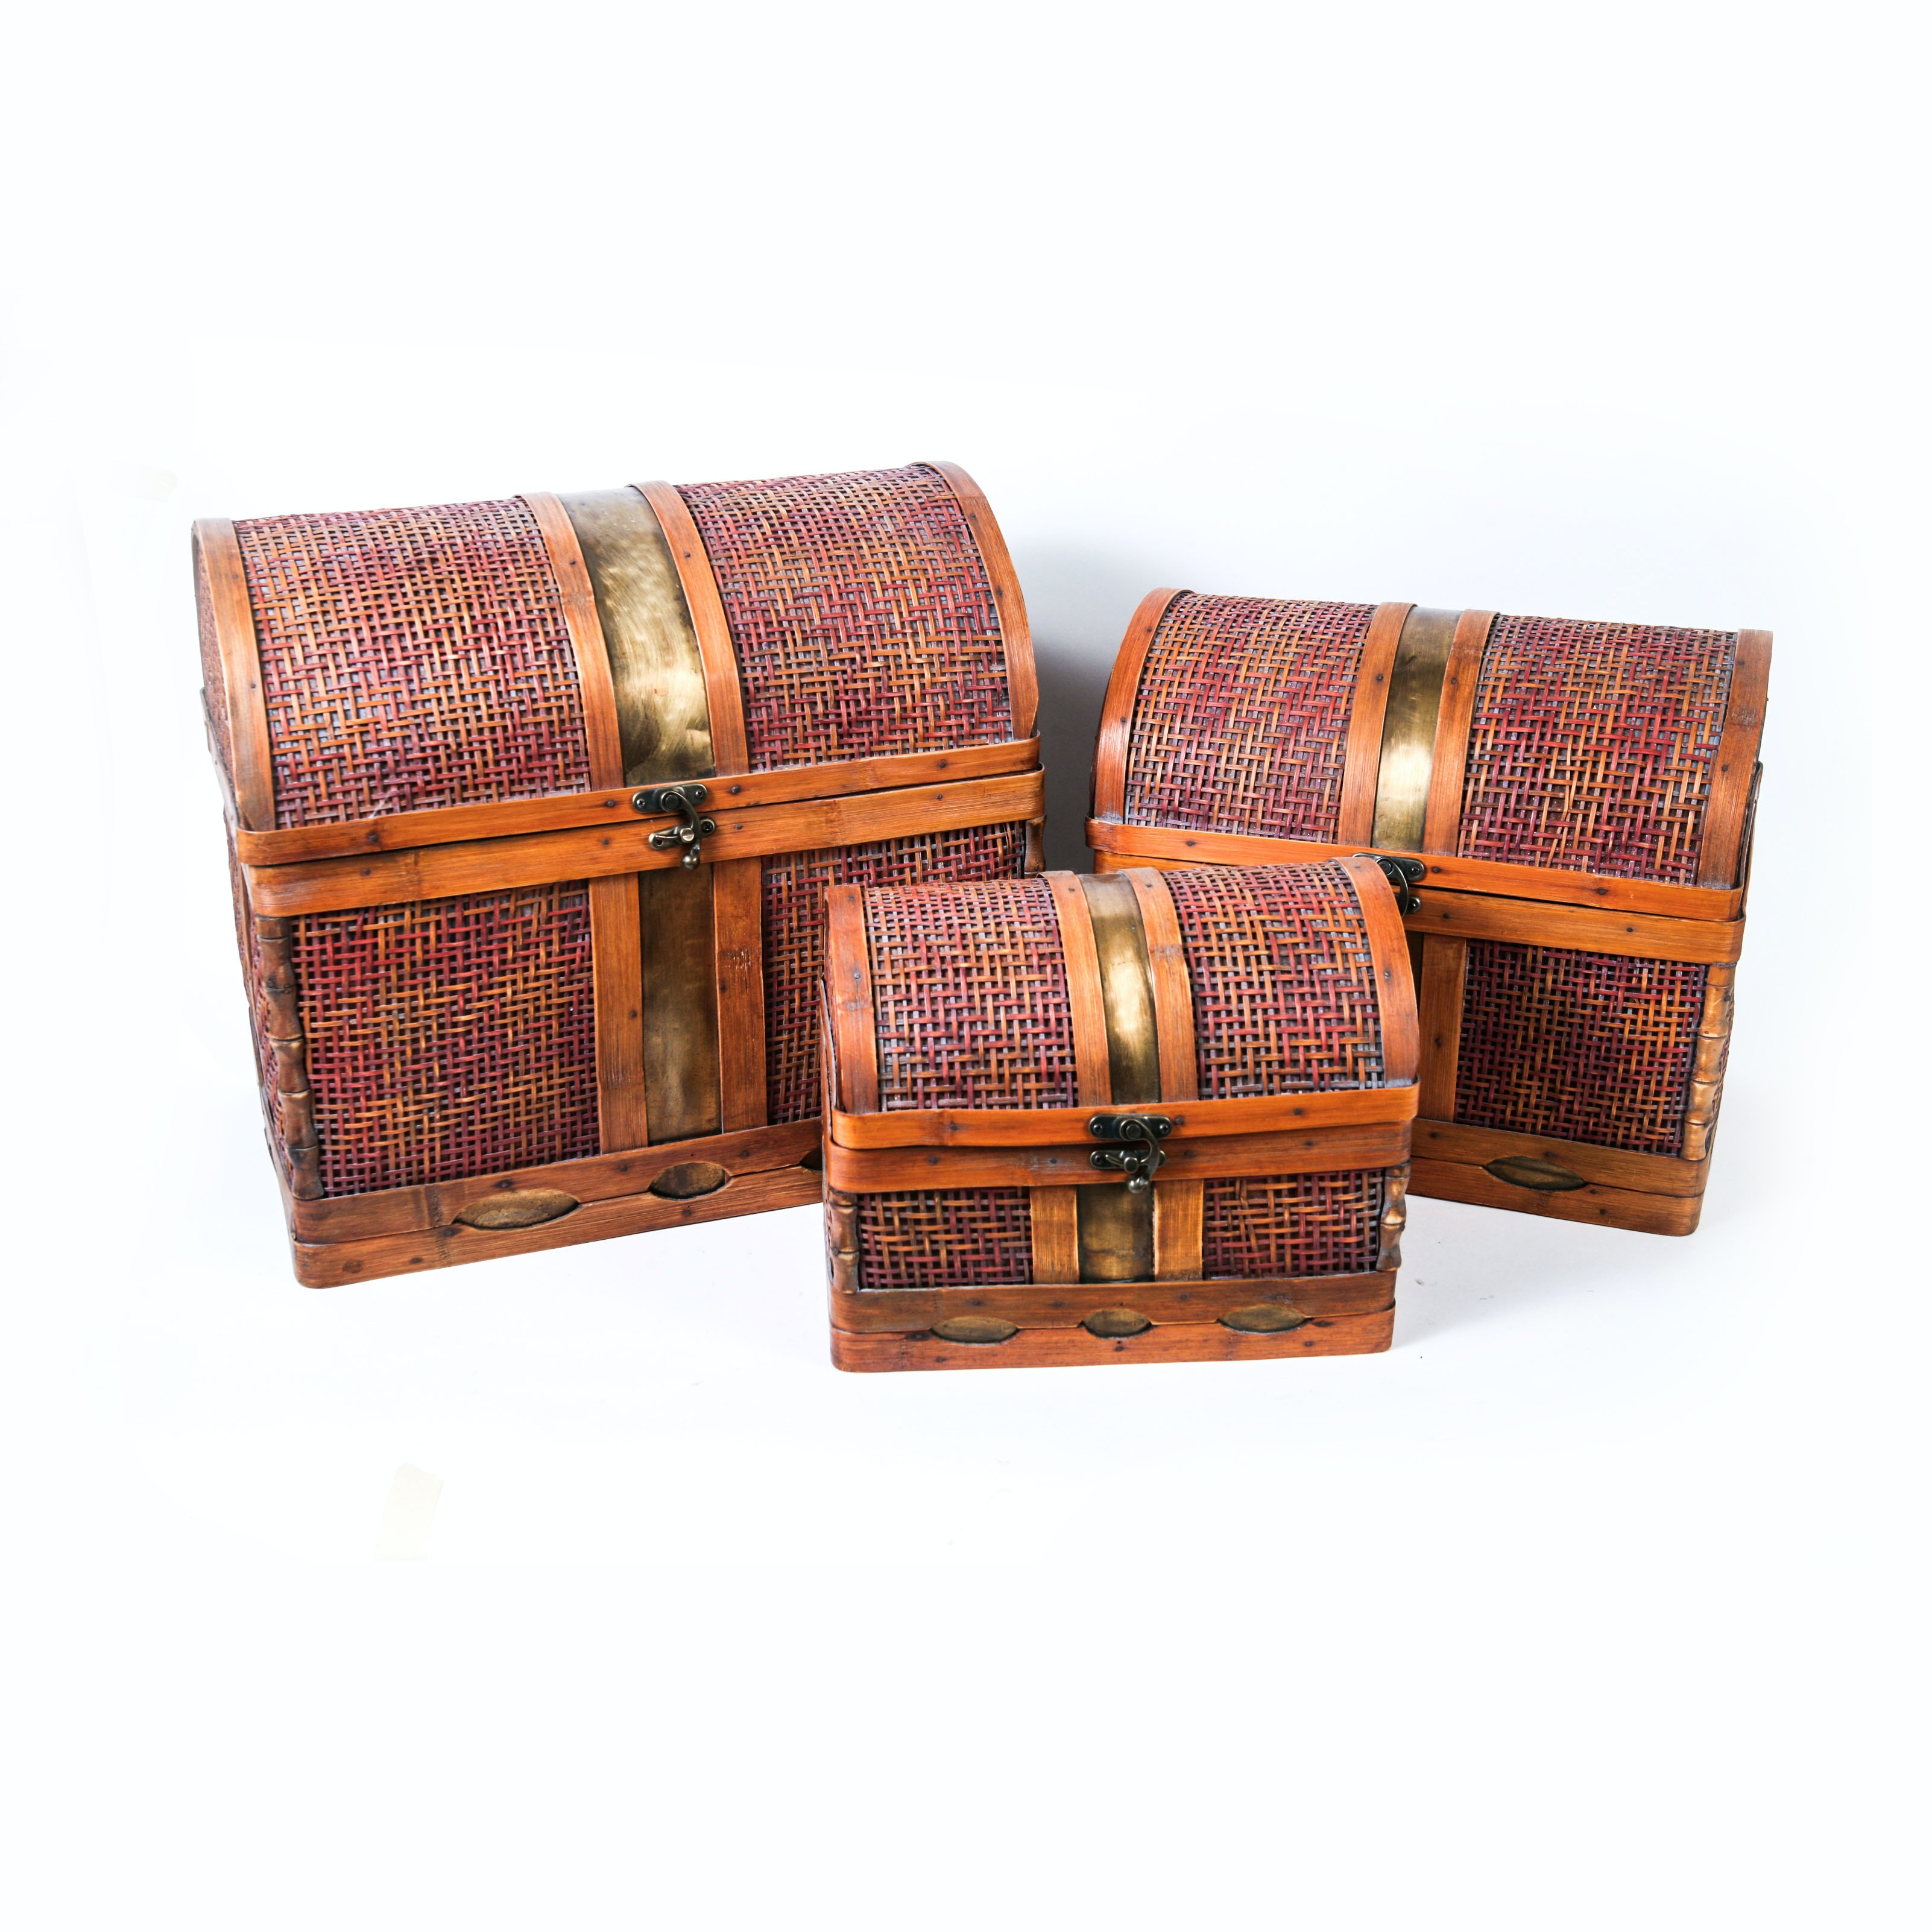 Nesting Wicker Trunk Set